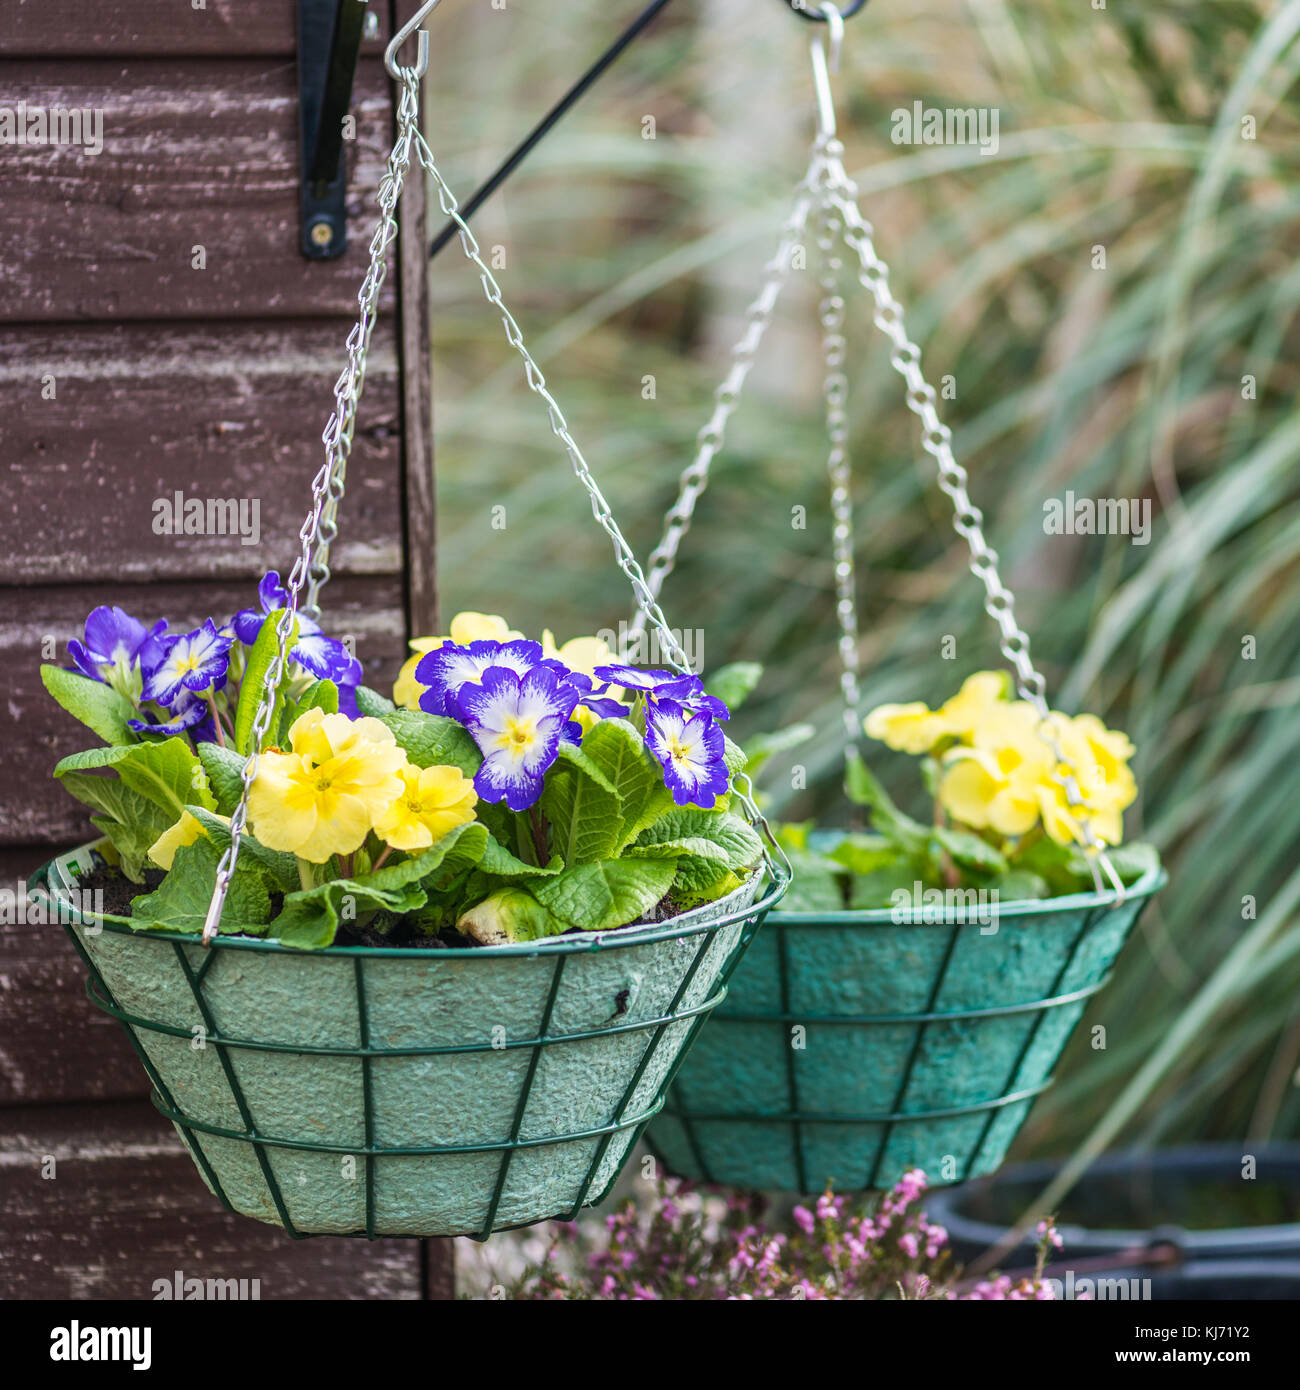 A pair of hanging baskets hang from the corner of a shed. - Stock Image